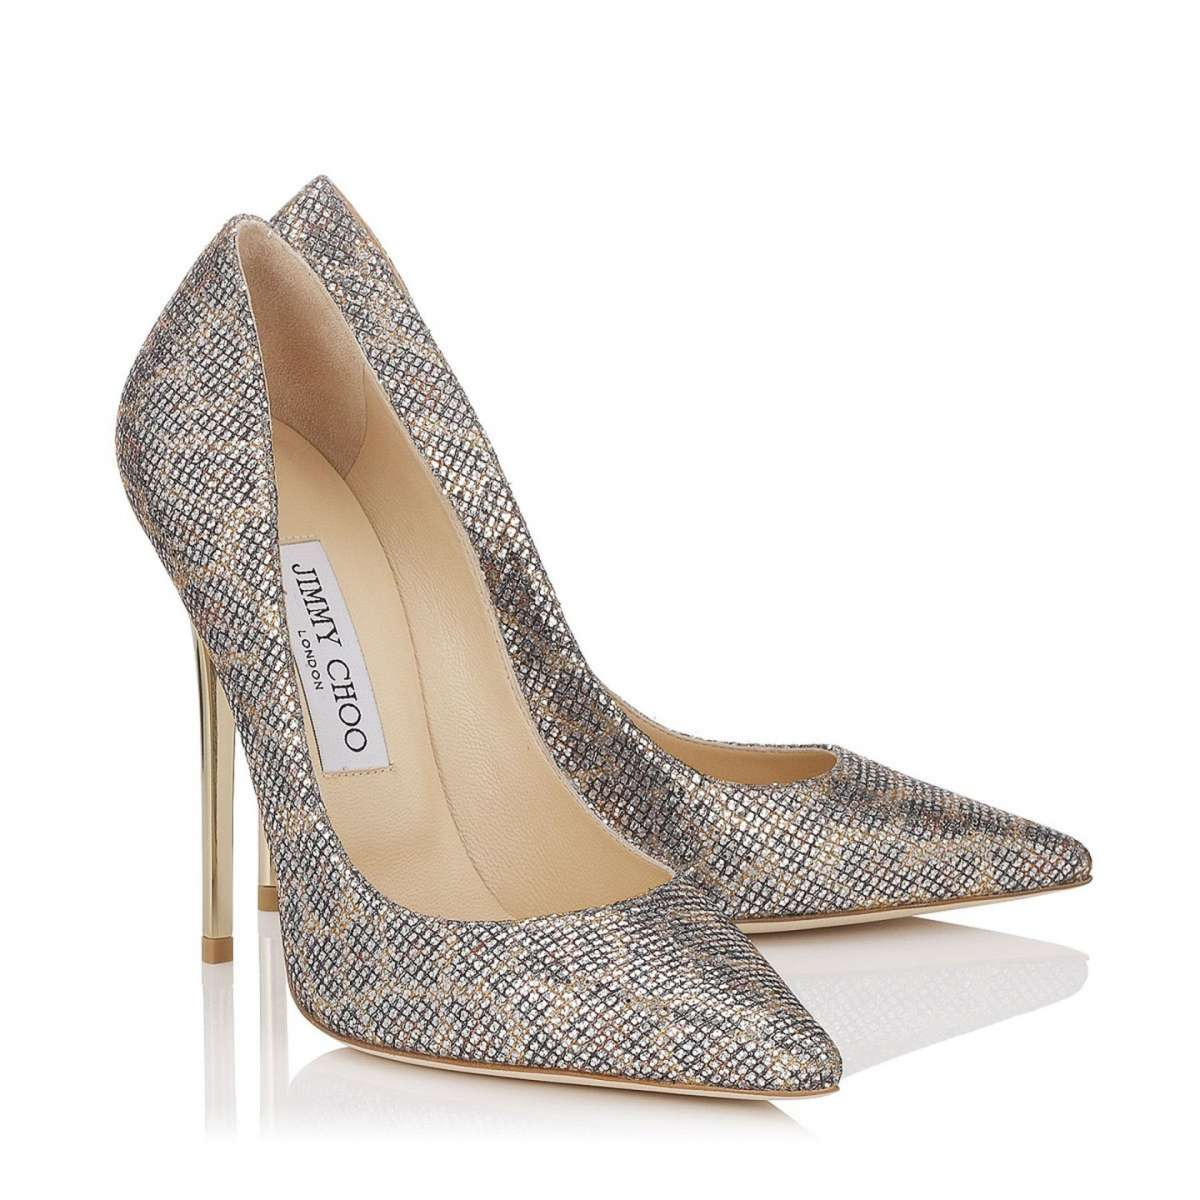 Pumps gioiello Jimmy Choo